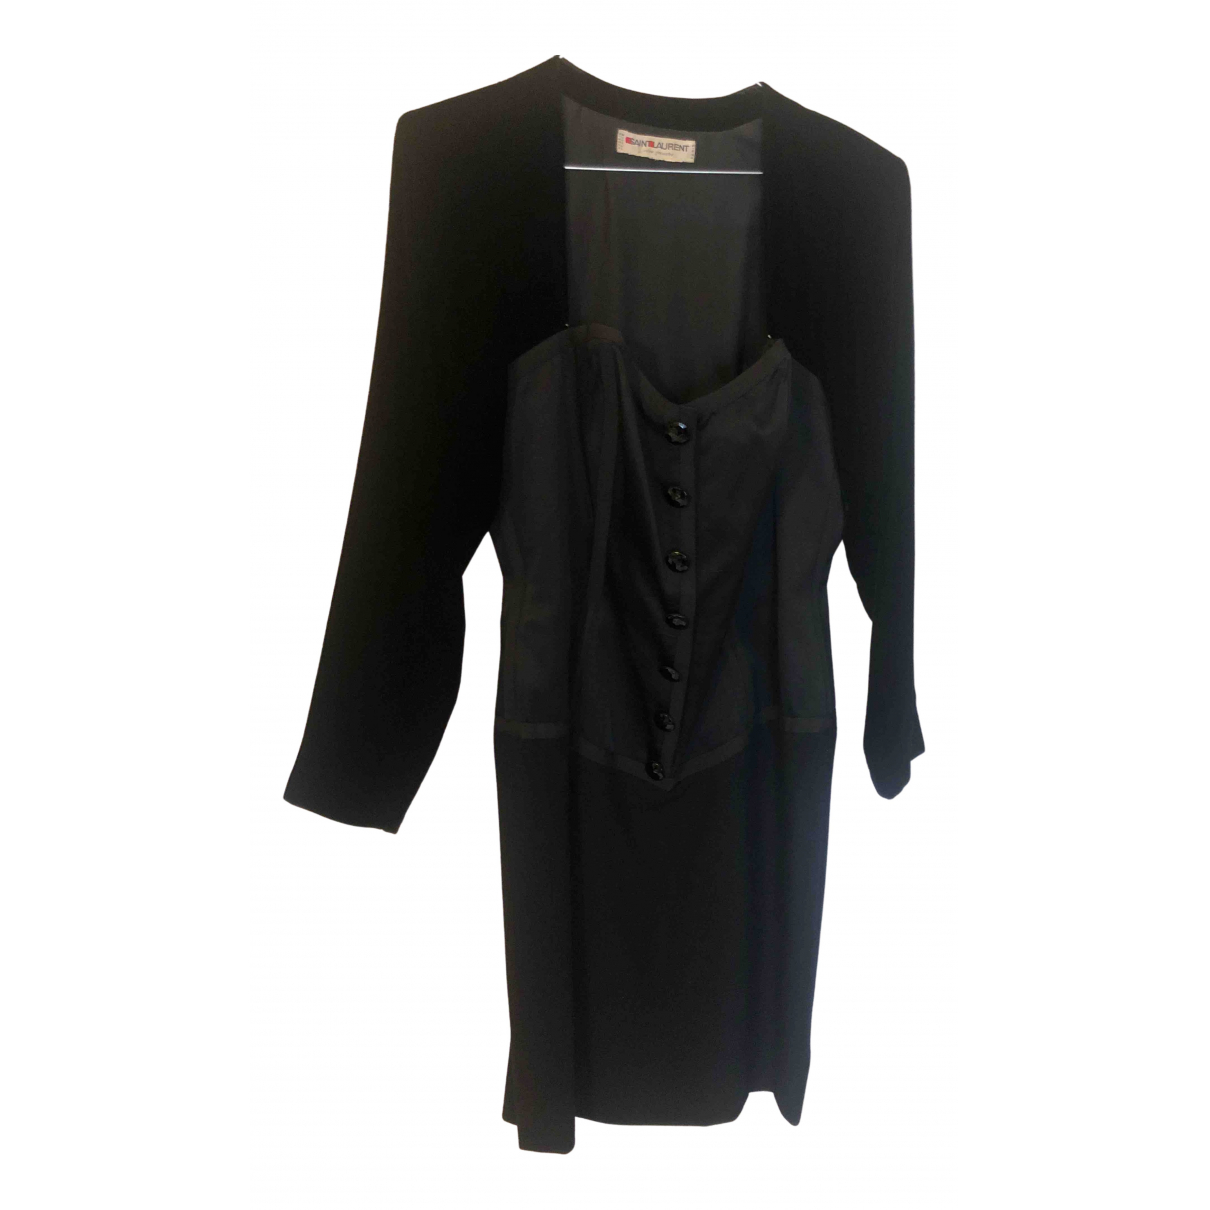 Saint Laurent \N Kleid in  Schwarz Samt